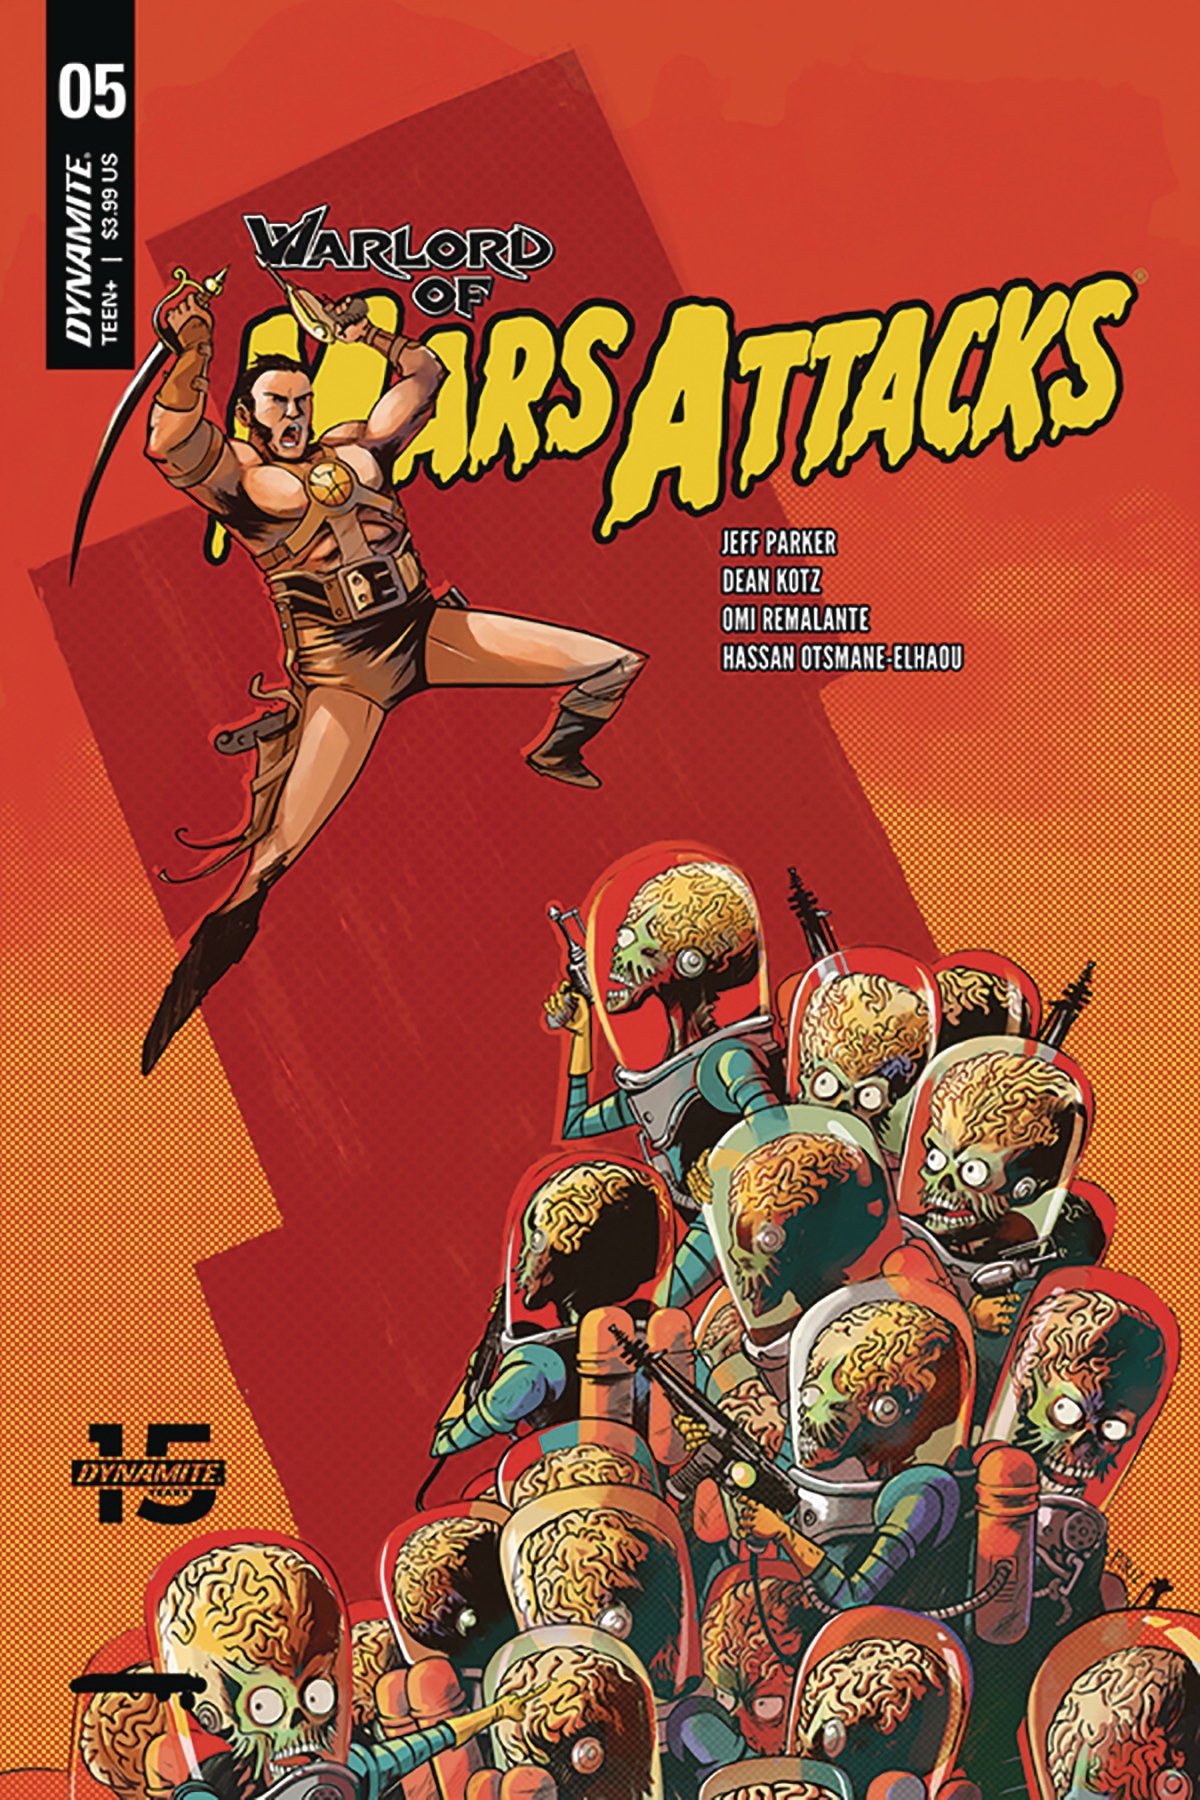 WARLORD OF MARS ATTACKS #5 CVR B PIRIZ